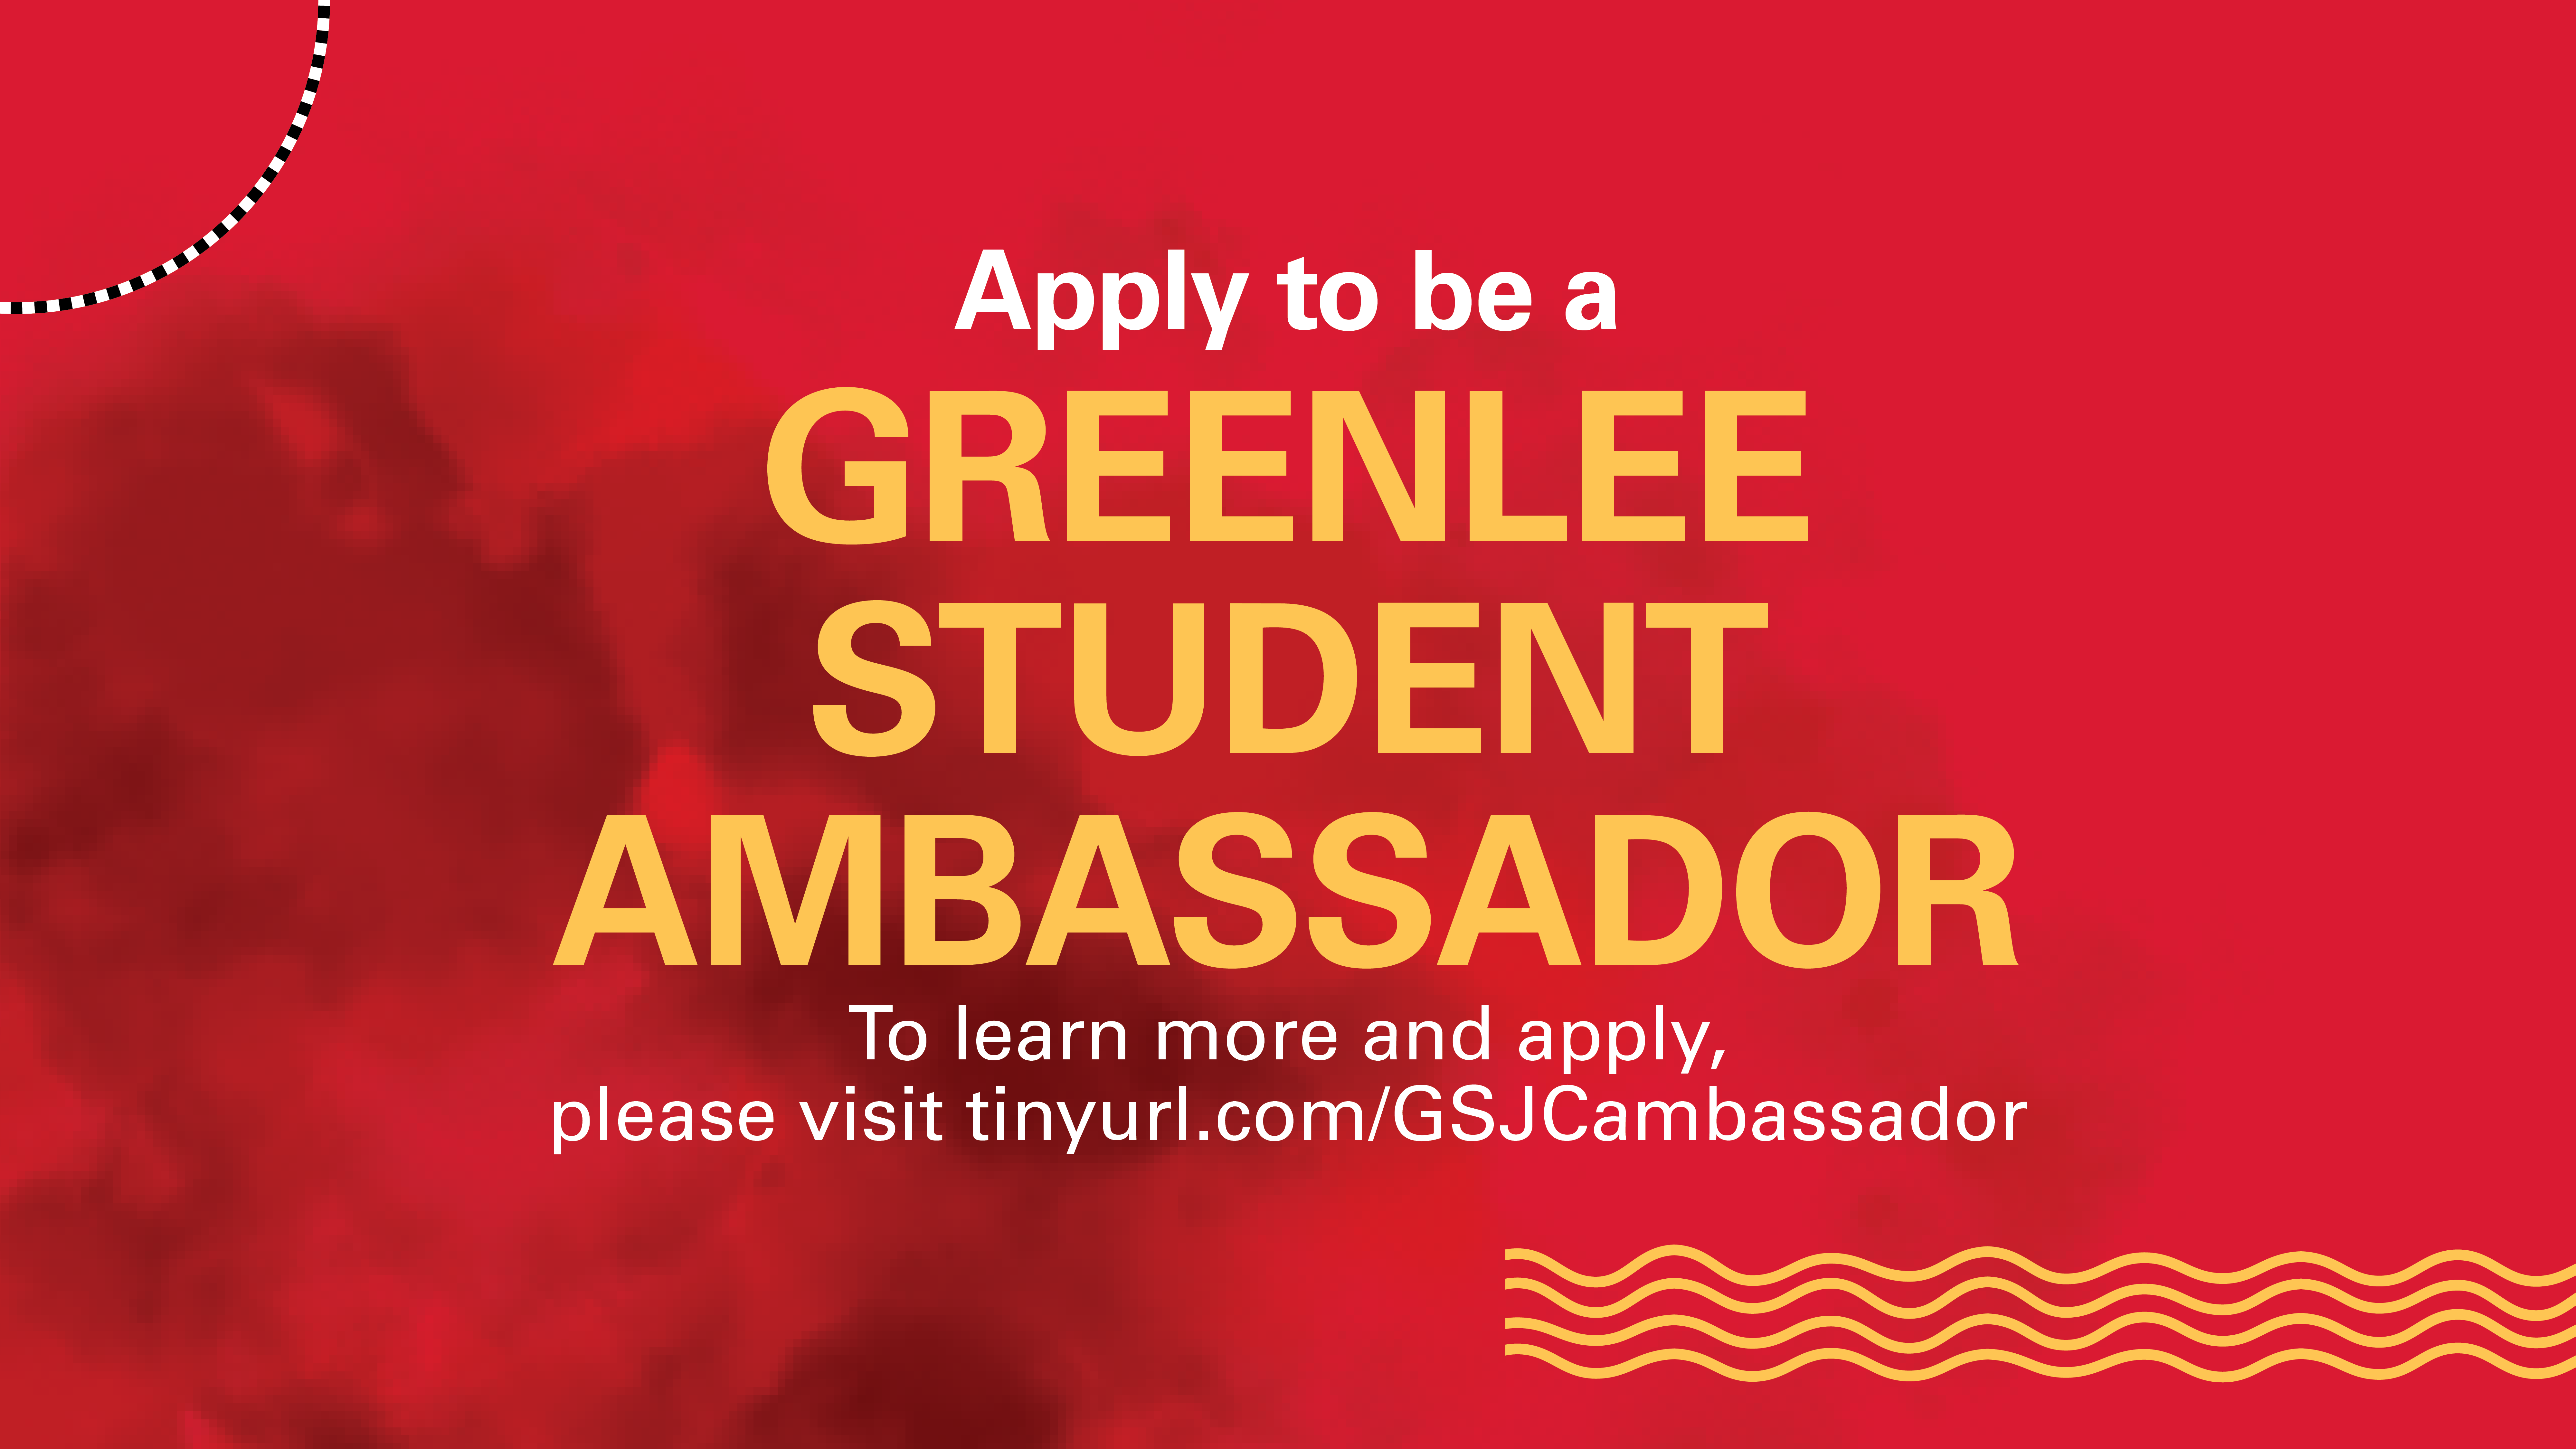 Apply to be a Greenlee Student Ambassador. To learn more and apply, visit tinyurl/GSJCambassador